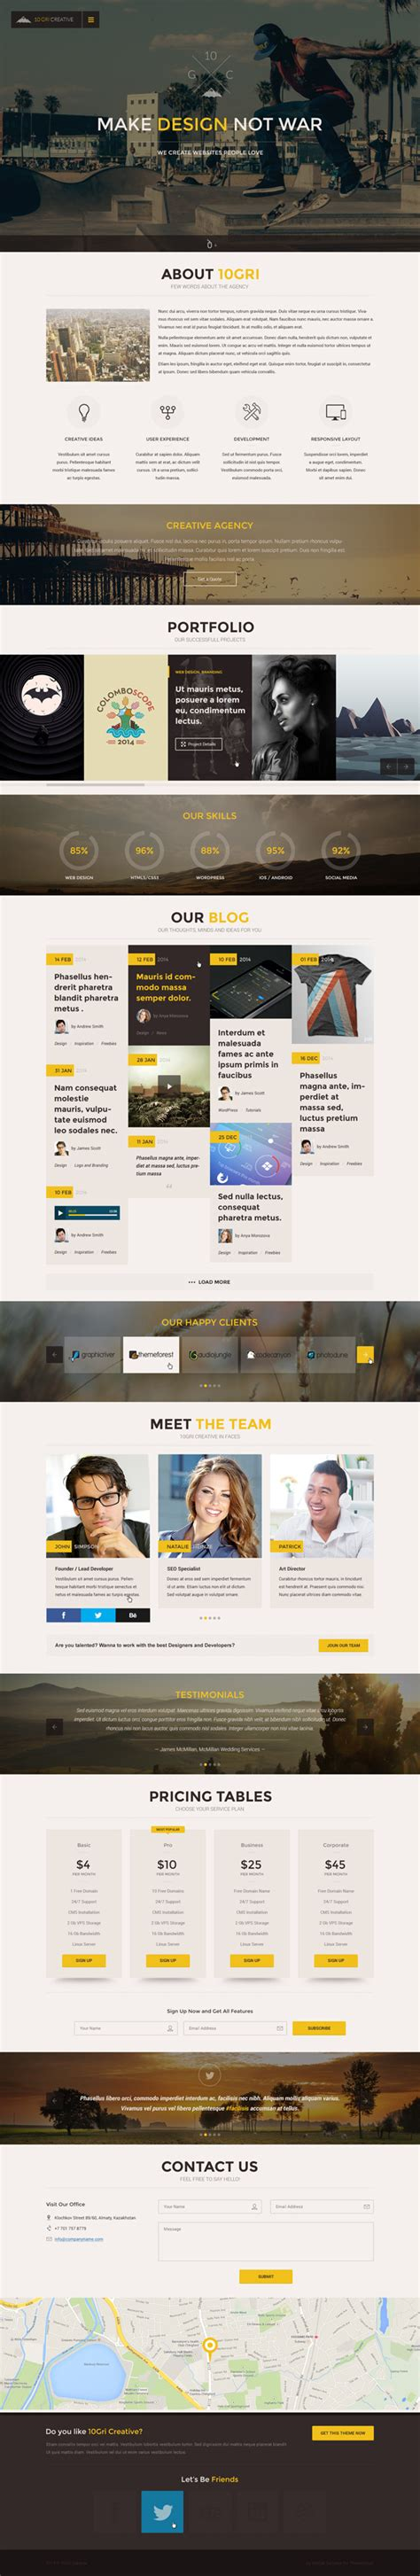 Html5 One Page Website Templates With Ui Ux Experience Design Graphic Design Junction Ux Website Templates